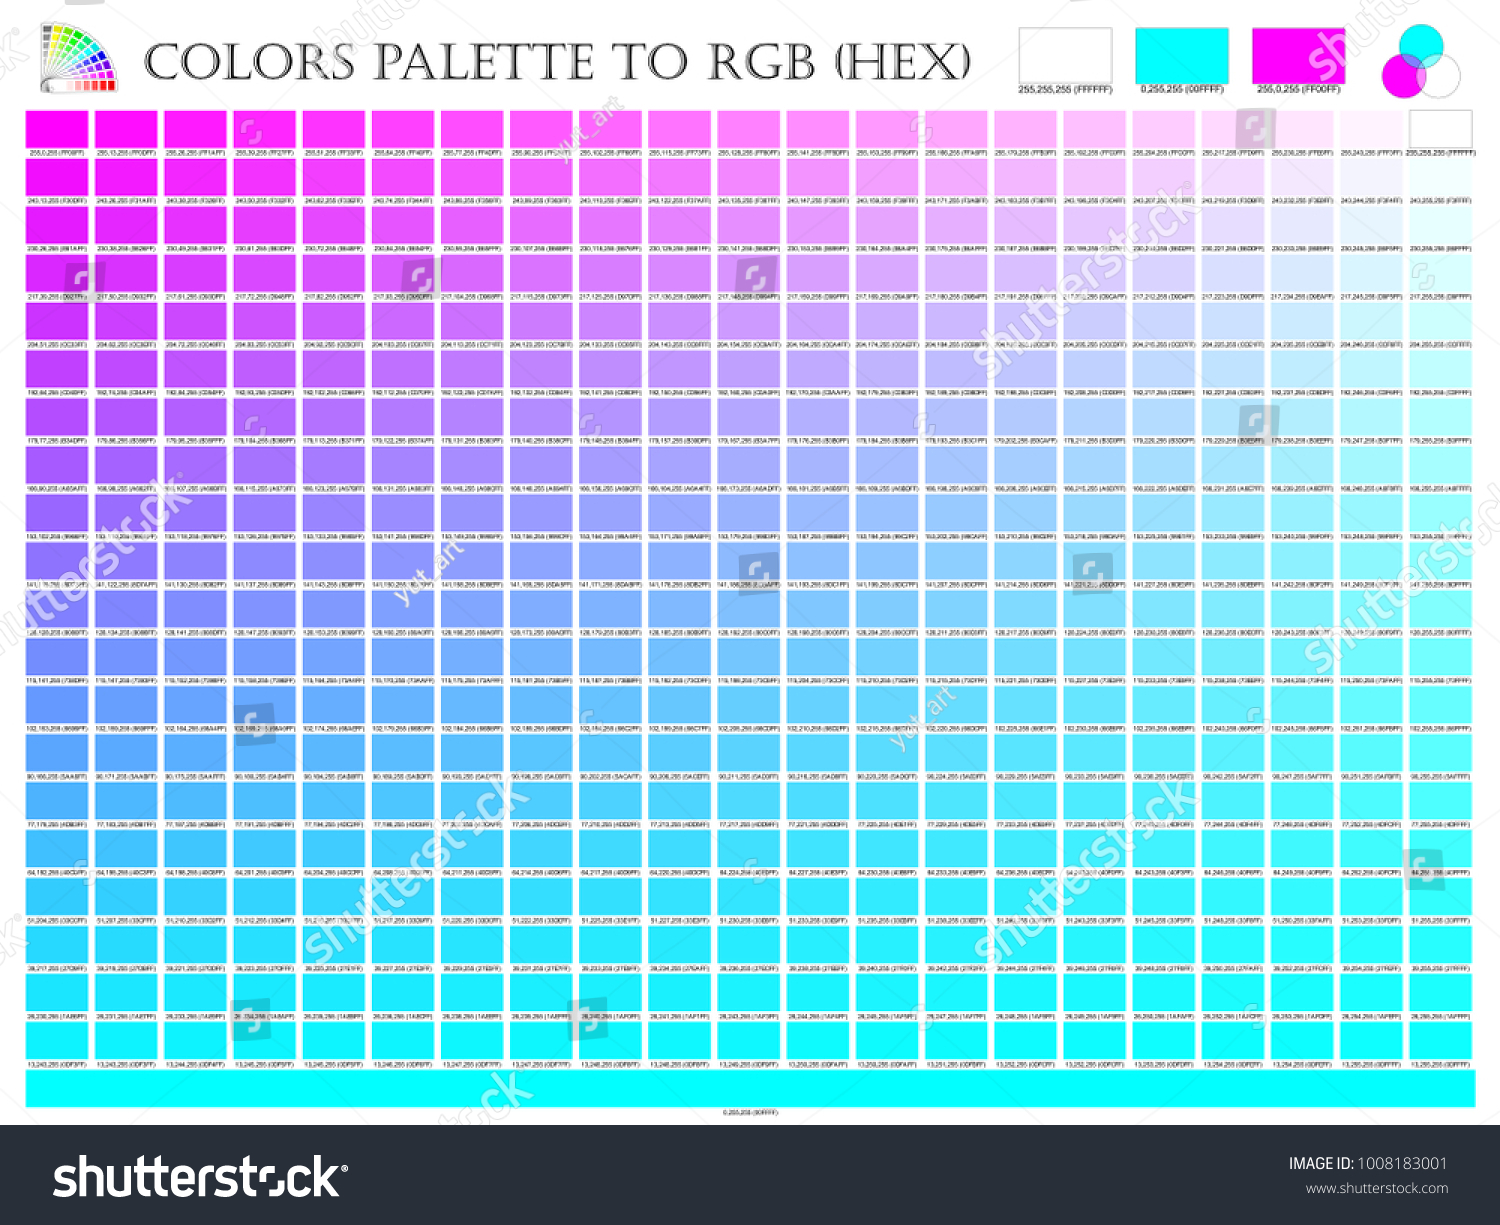 Amazing Color Palette Mixer 3 Color Pink Stock Vector 1008183001 - Shutterstock with regard to Awesome Color Palette In R